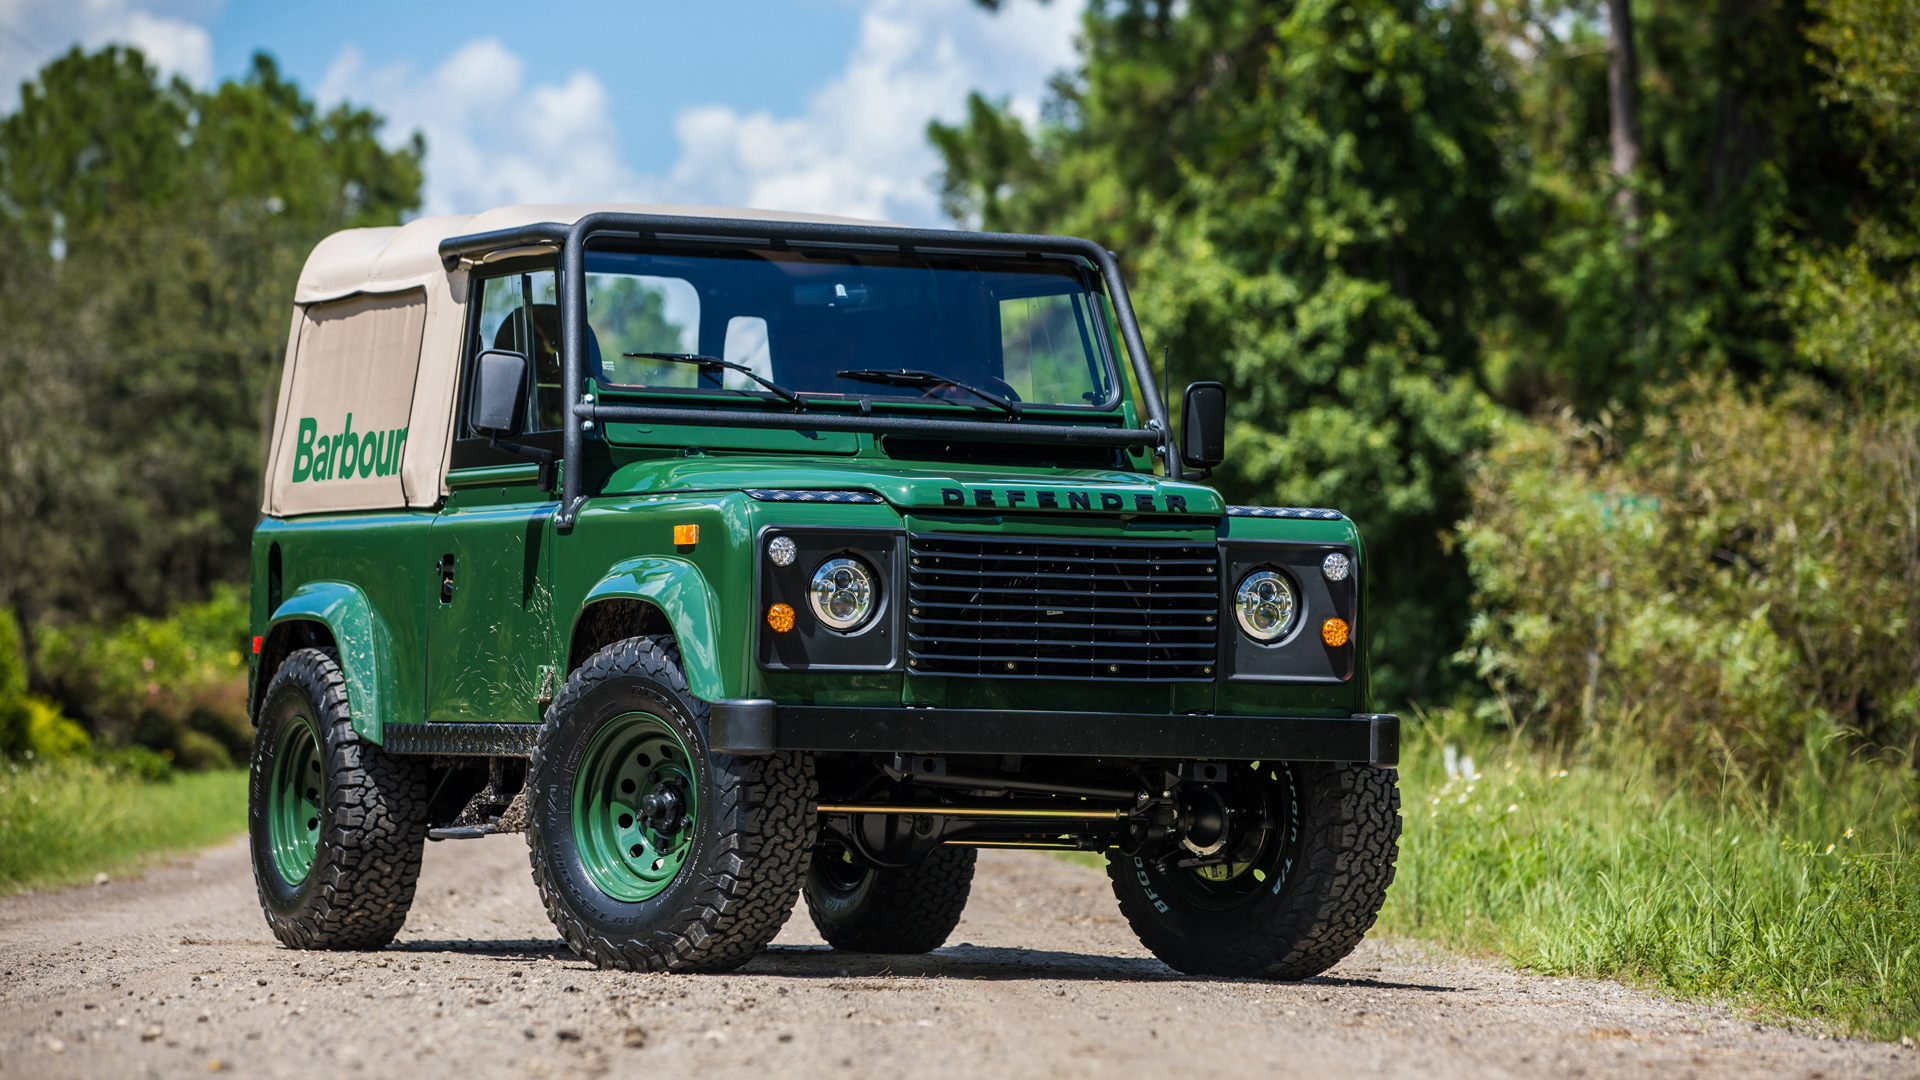 East Coast Defender Project Barbour